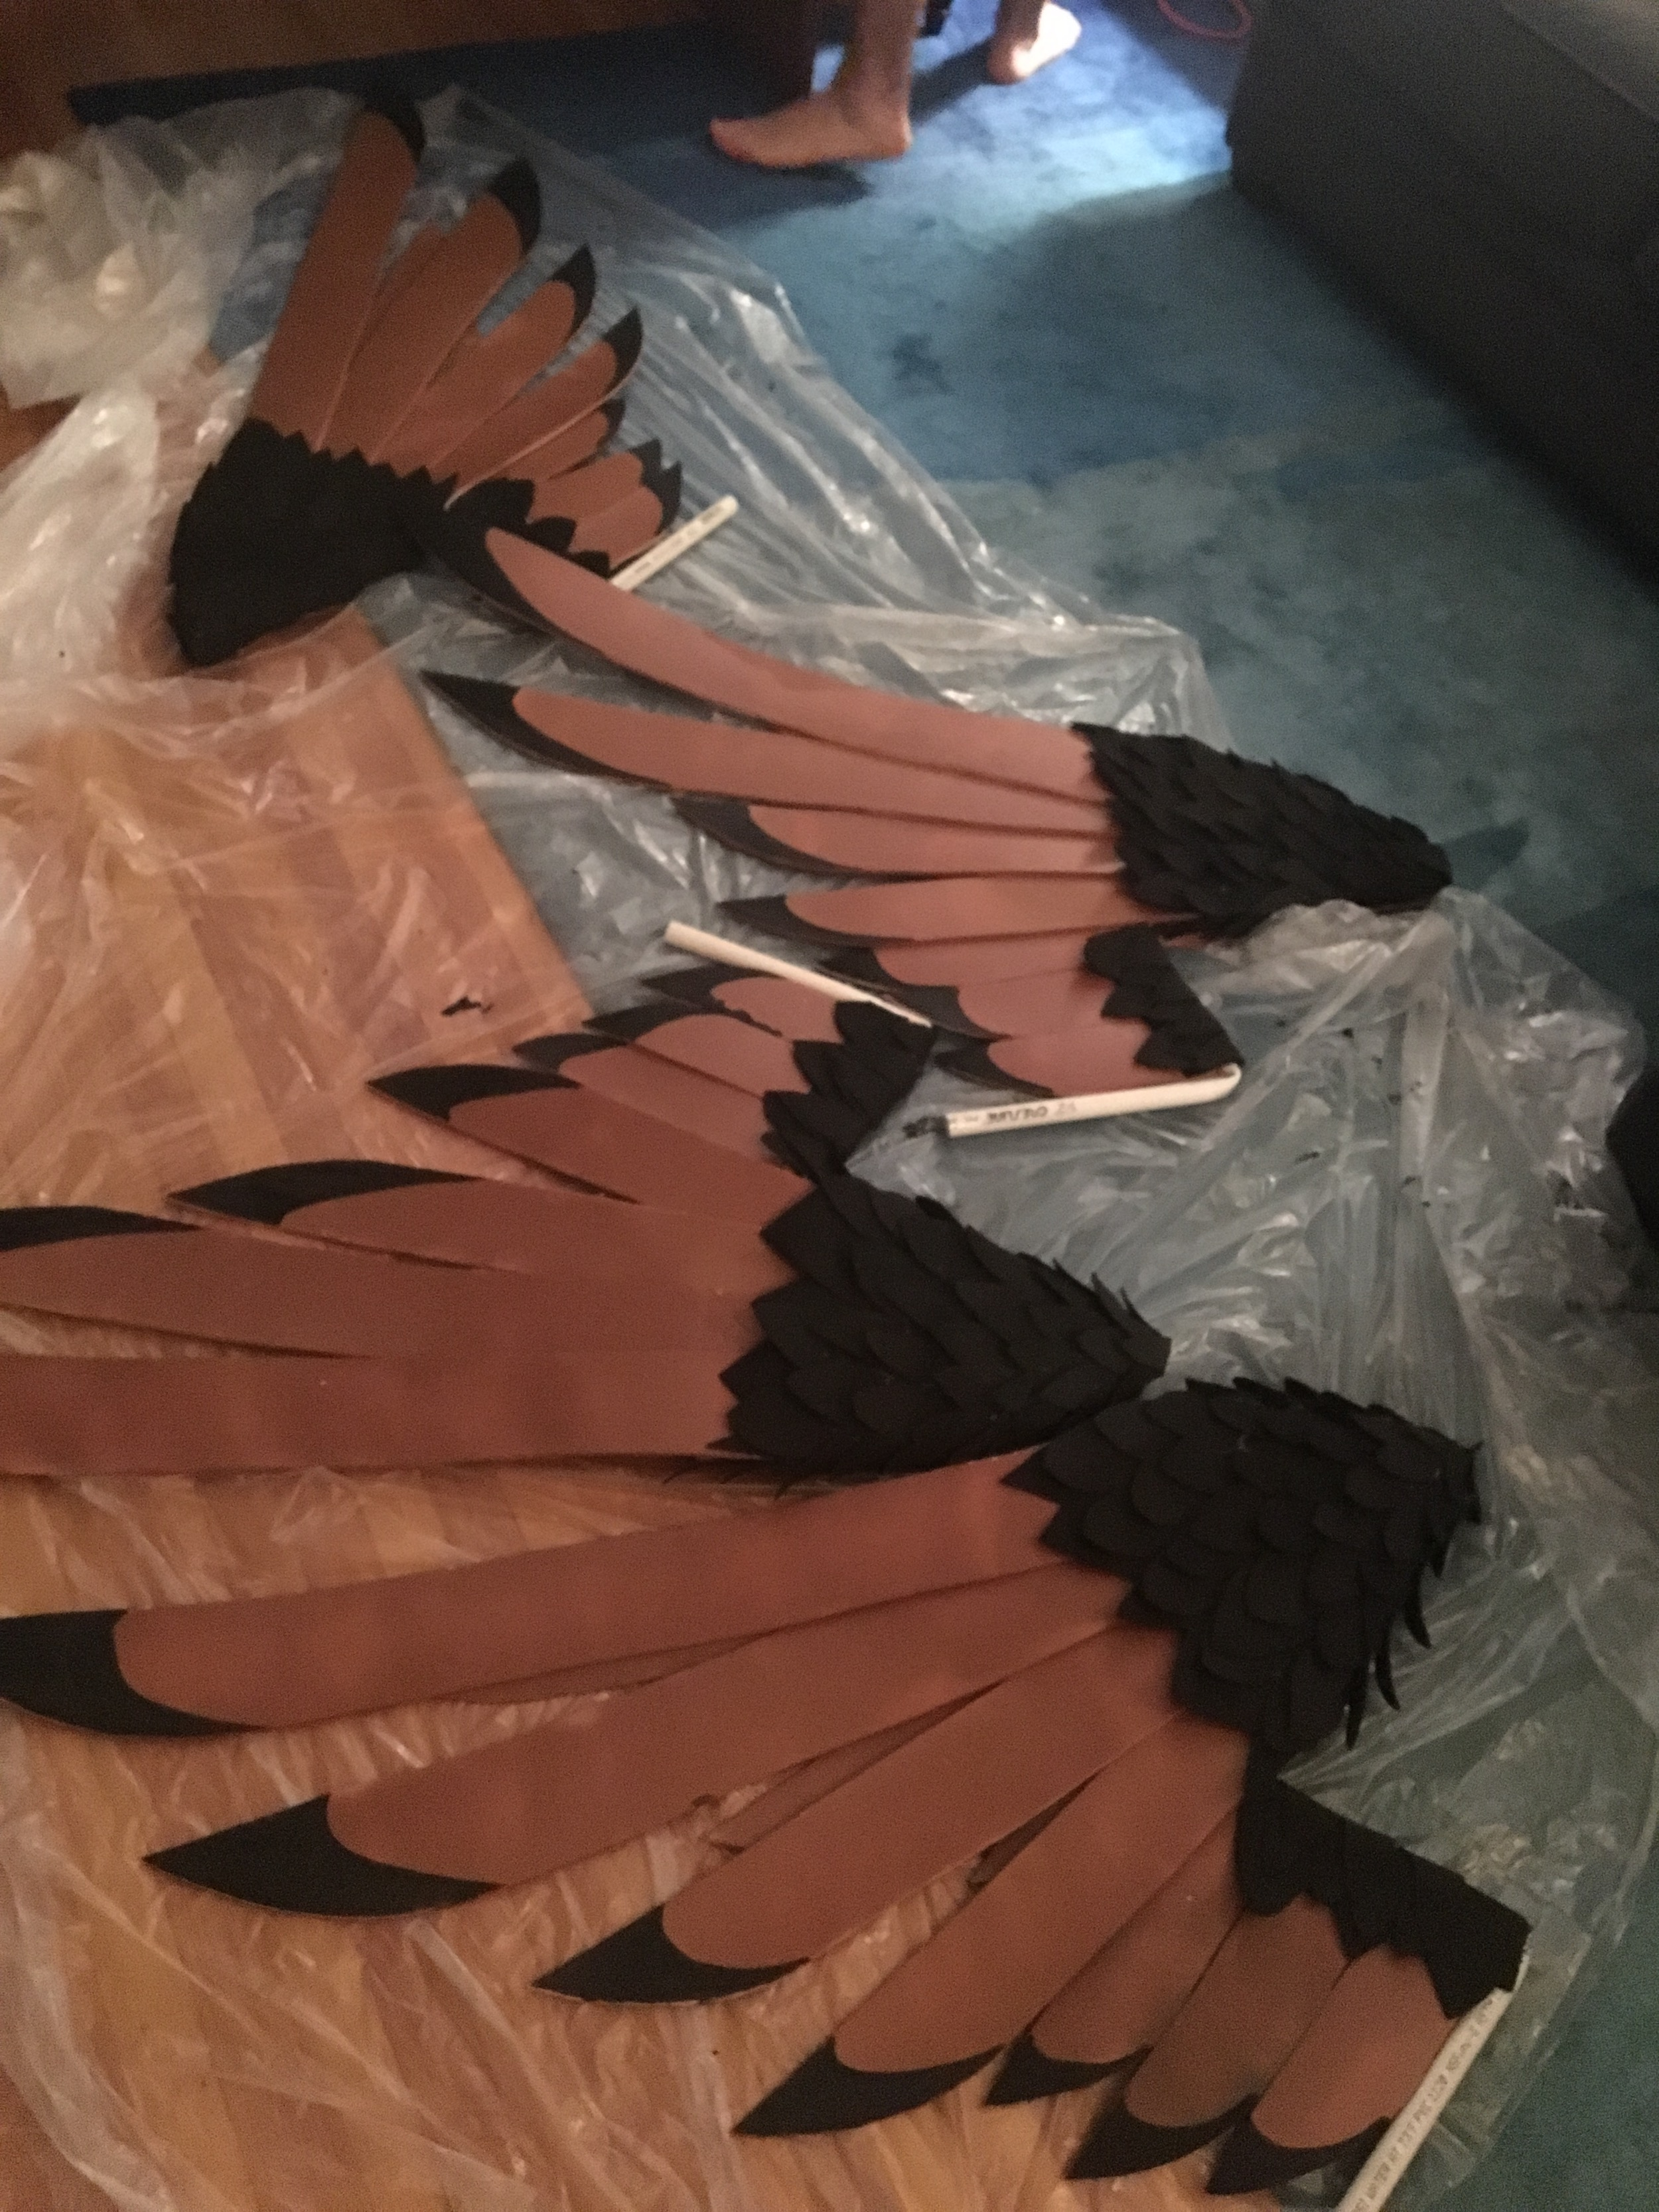 The final four wings, just before their detailing.